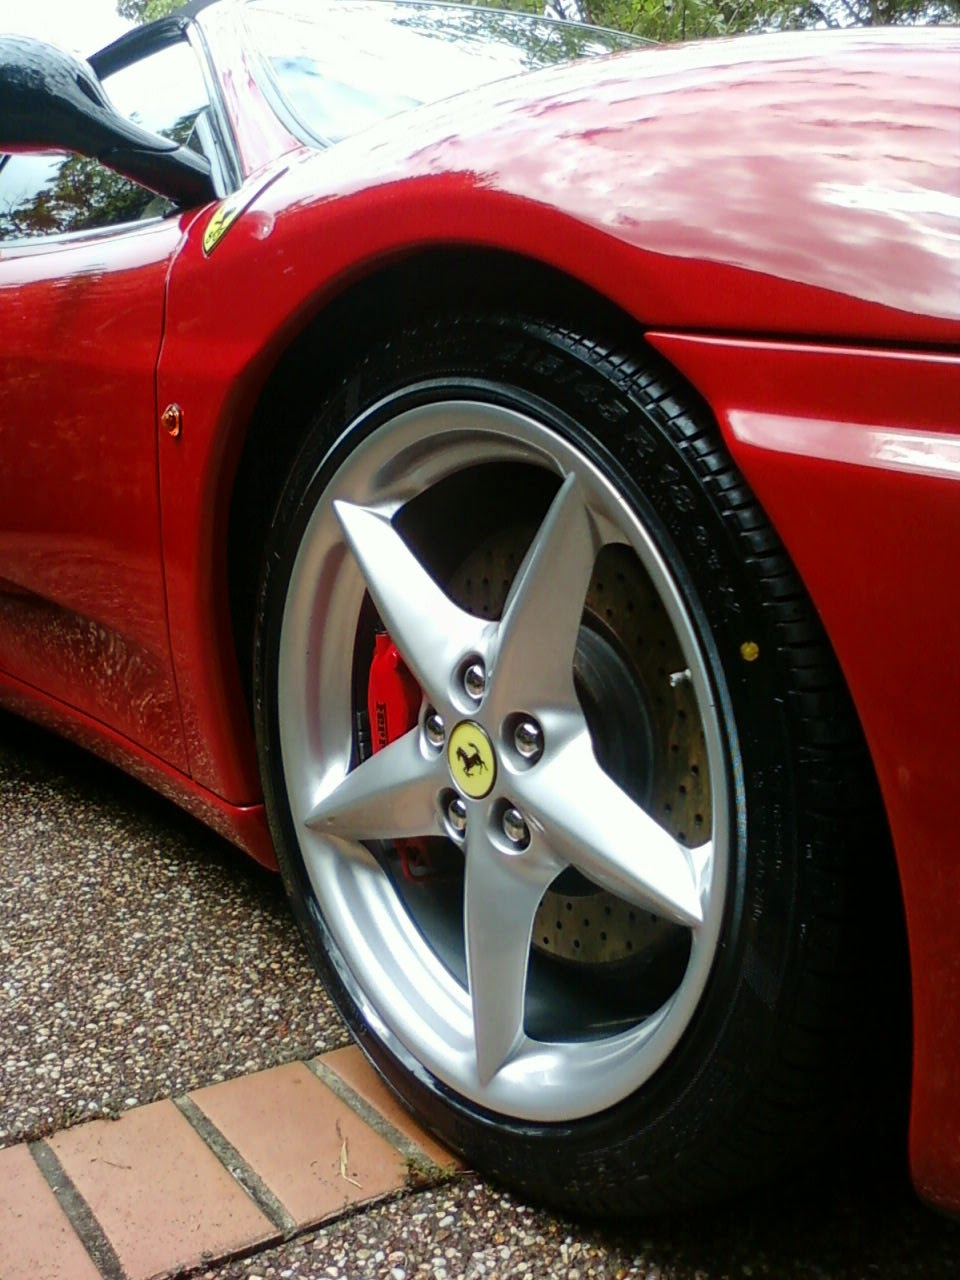 Bjs detailing car detailing paint protection opti coat window tinting common questions